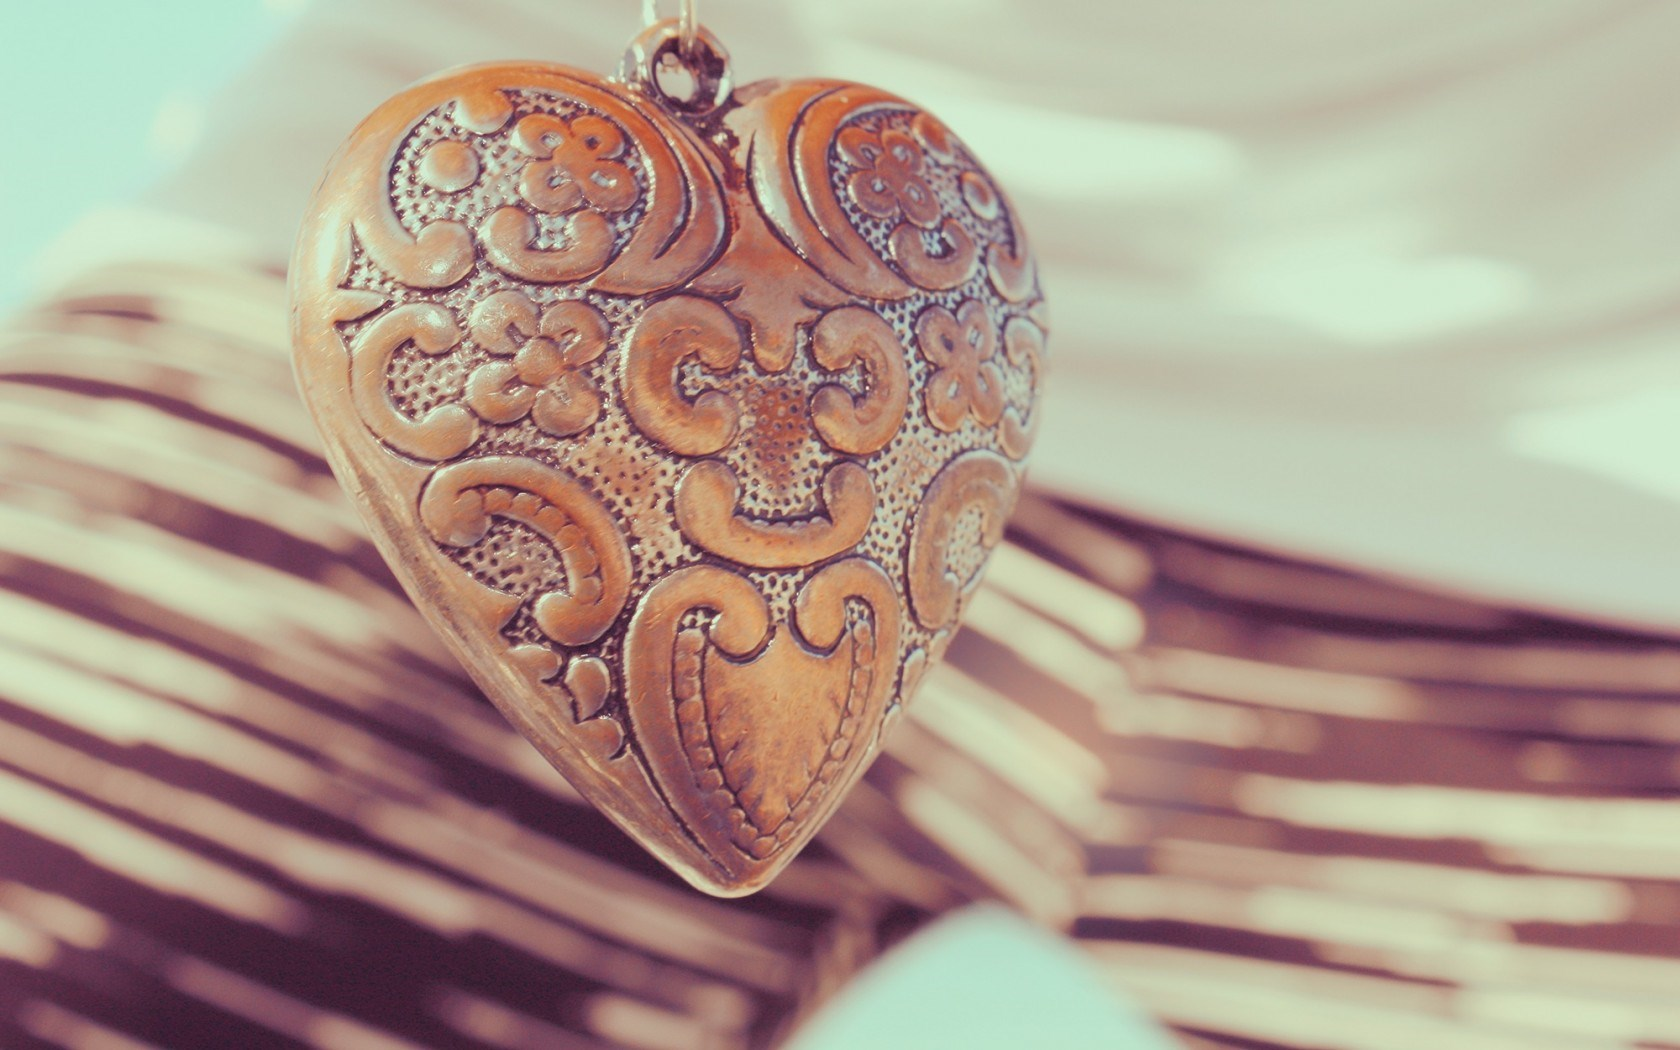 love-pendant-heart-engraved-decoration-hd-wallpaper